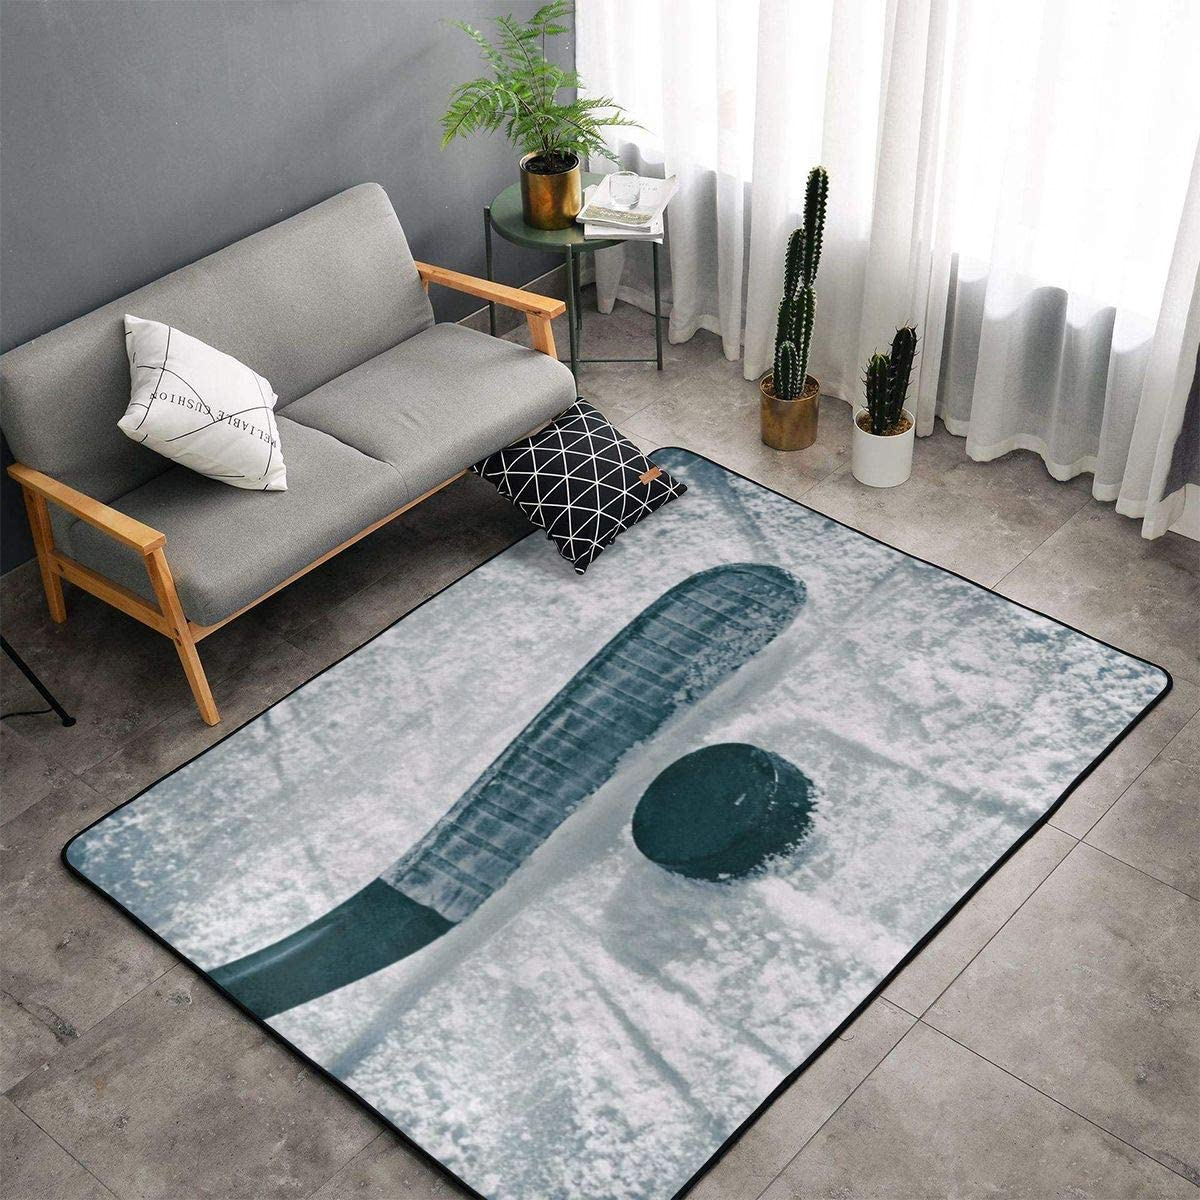 """Indoor Modern Soft Floor Area Rugs Fluffy Machine Washable Carpets 60"""" X 39"""" Ice Hockey Suitable for Children Bedroom, Office, Coffee Table, Balcony Home Decor Rugs"""